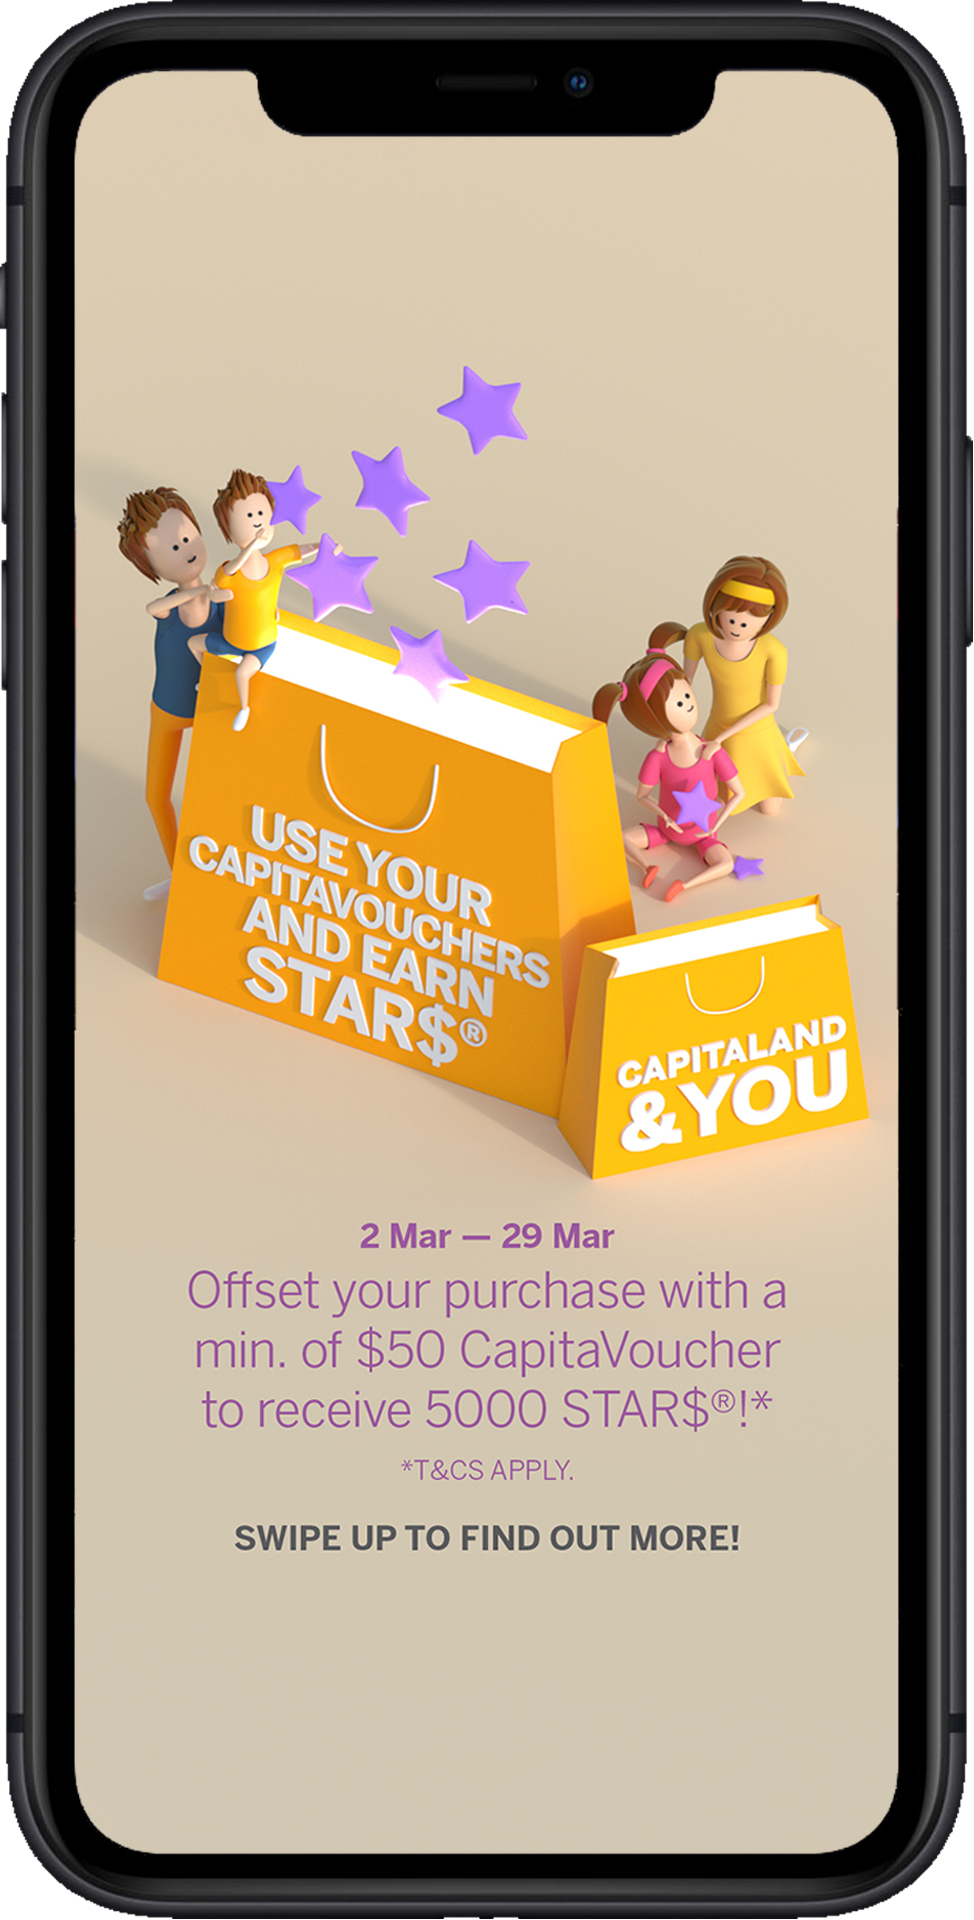 Capitaland and You (Instagram Story Ad 2)